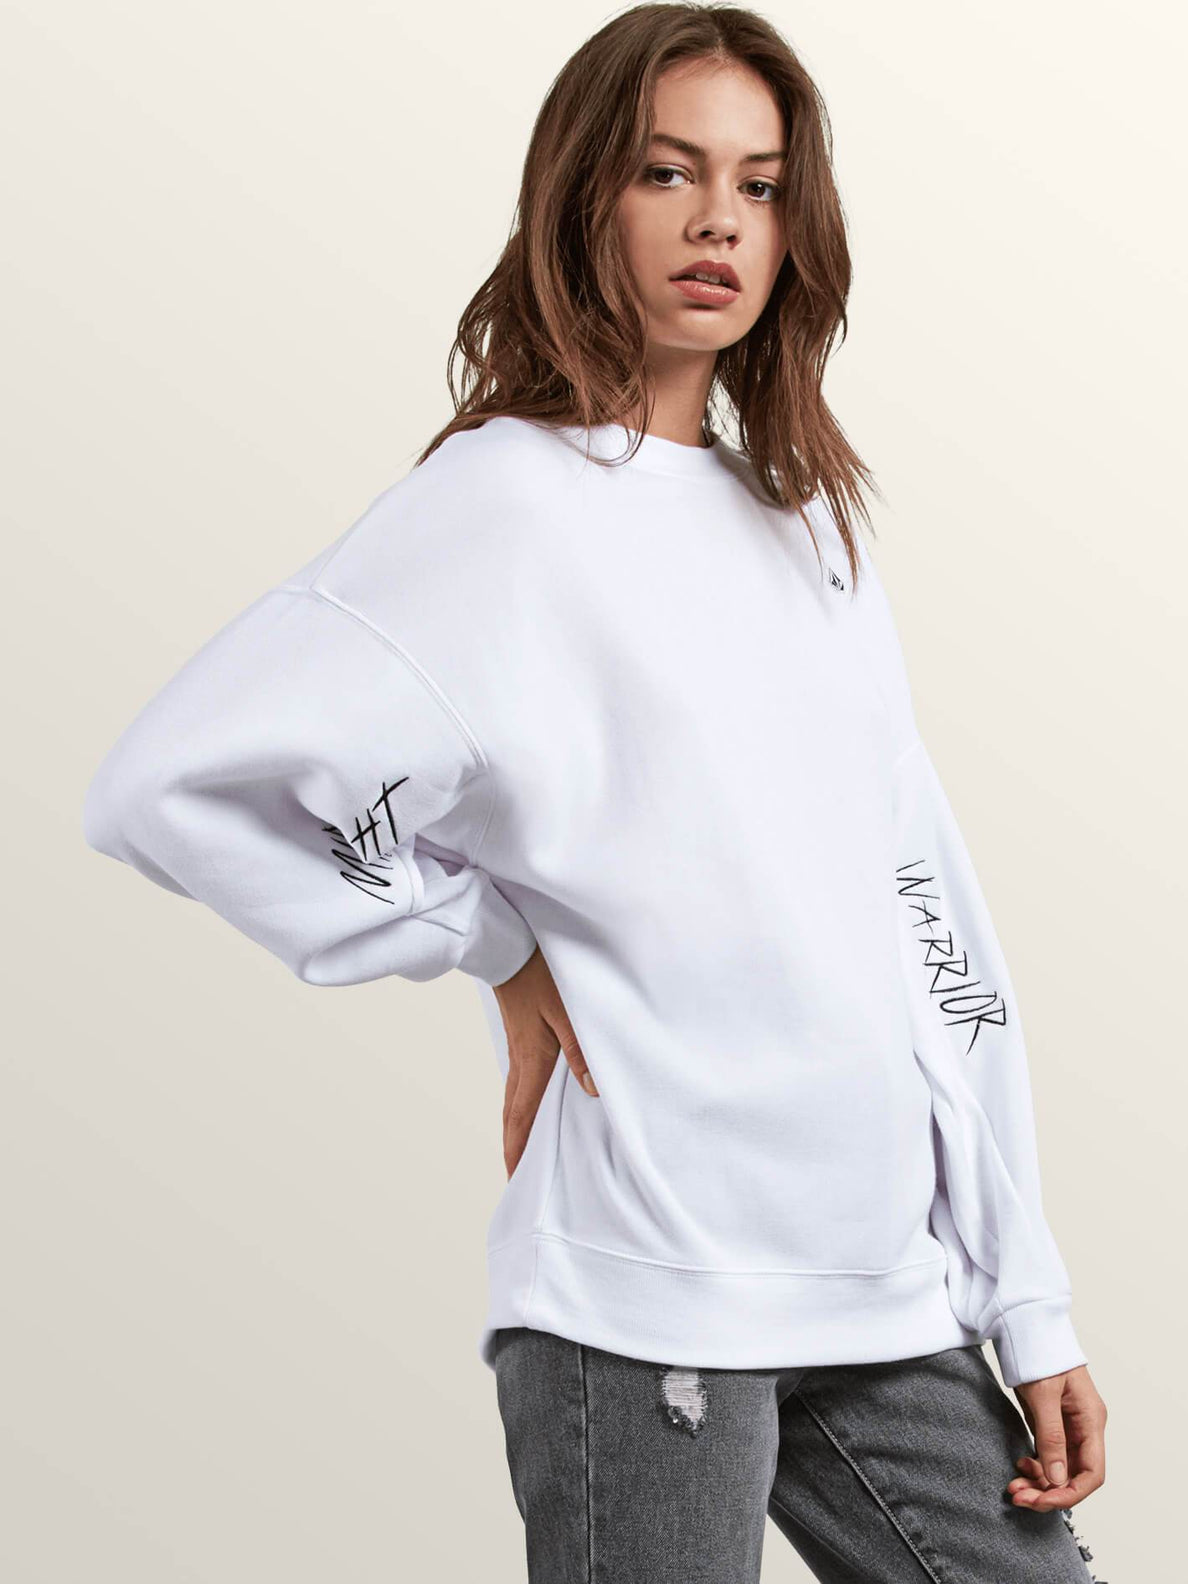 Darting Traffic Crew Sweatshirt In White, Alternate View